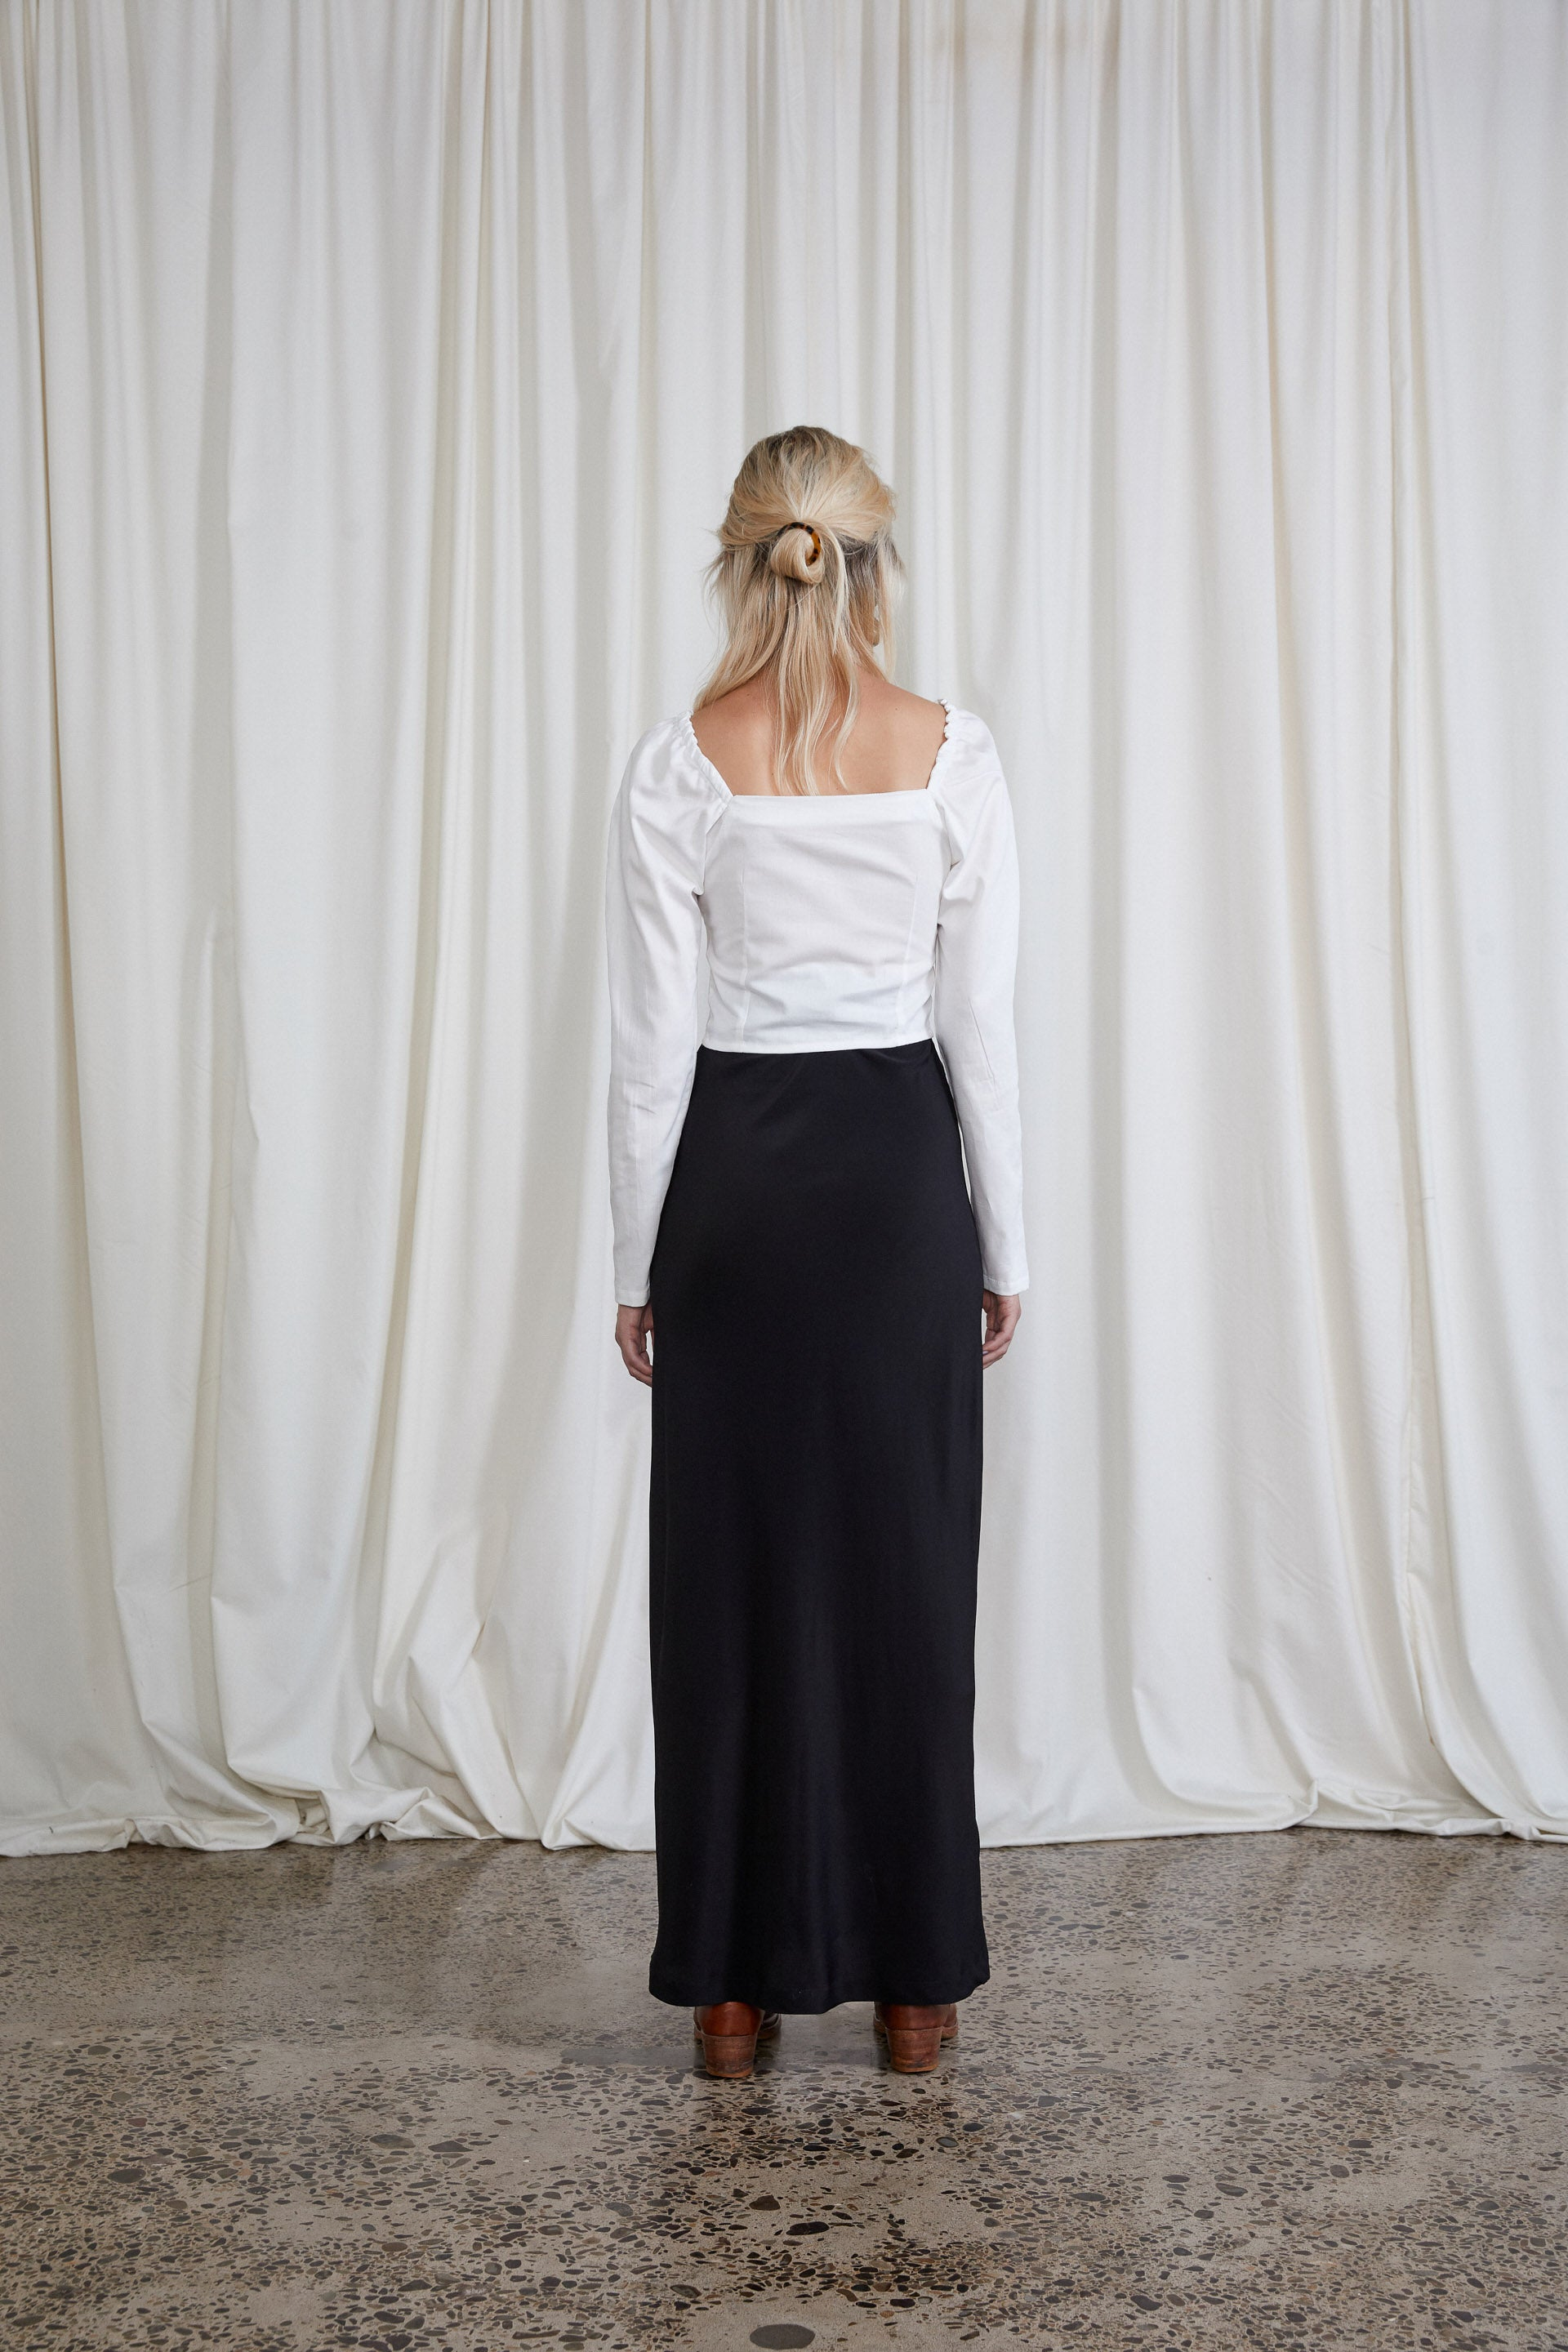 Plath Skirt - Onyx Silk Crepe